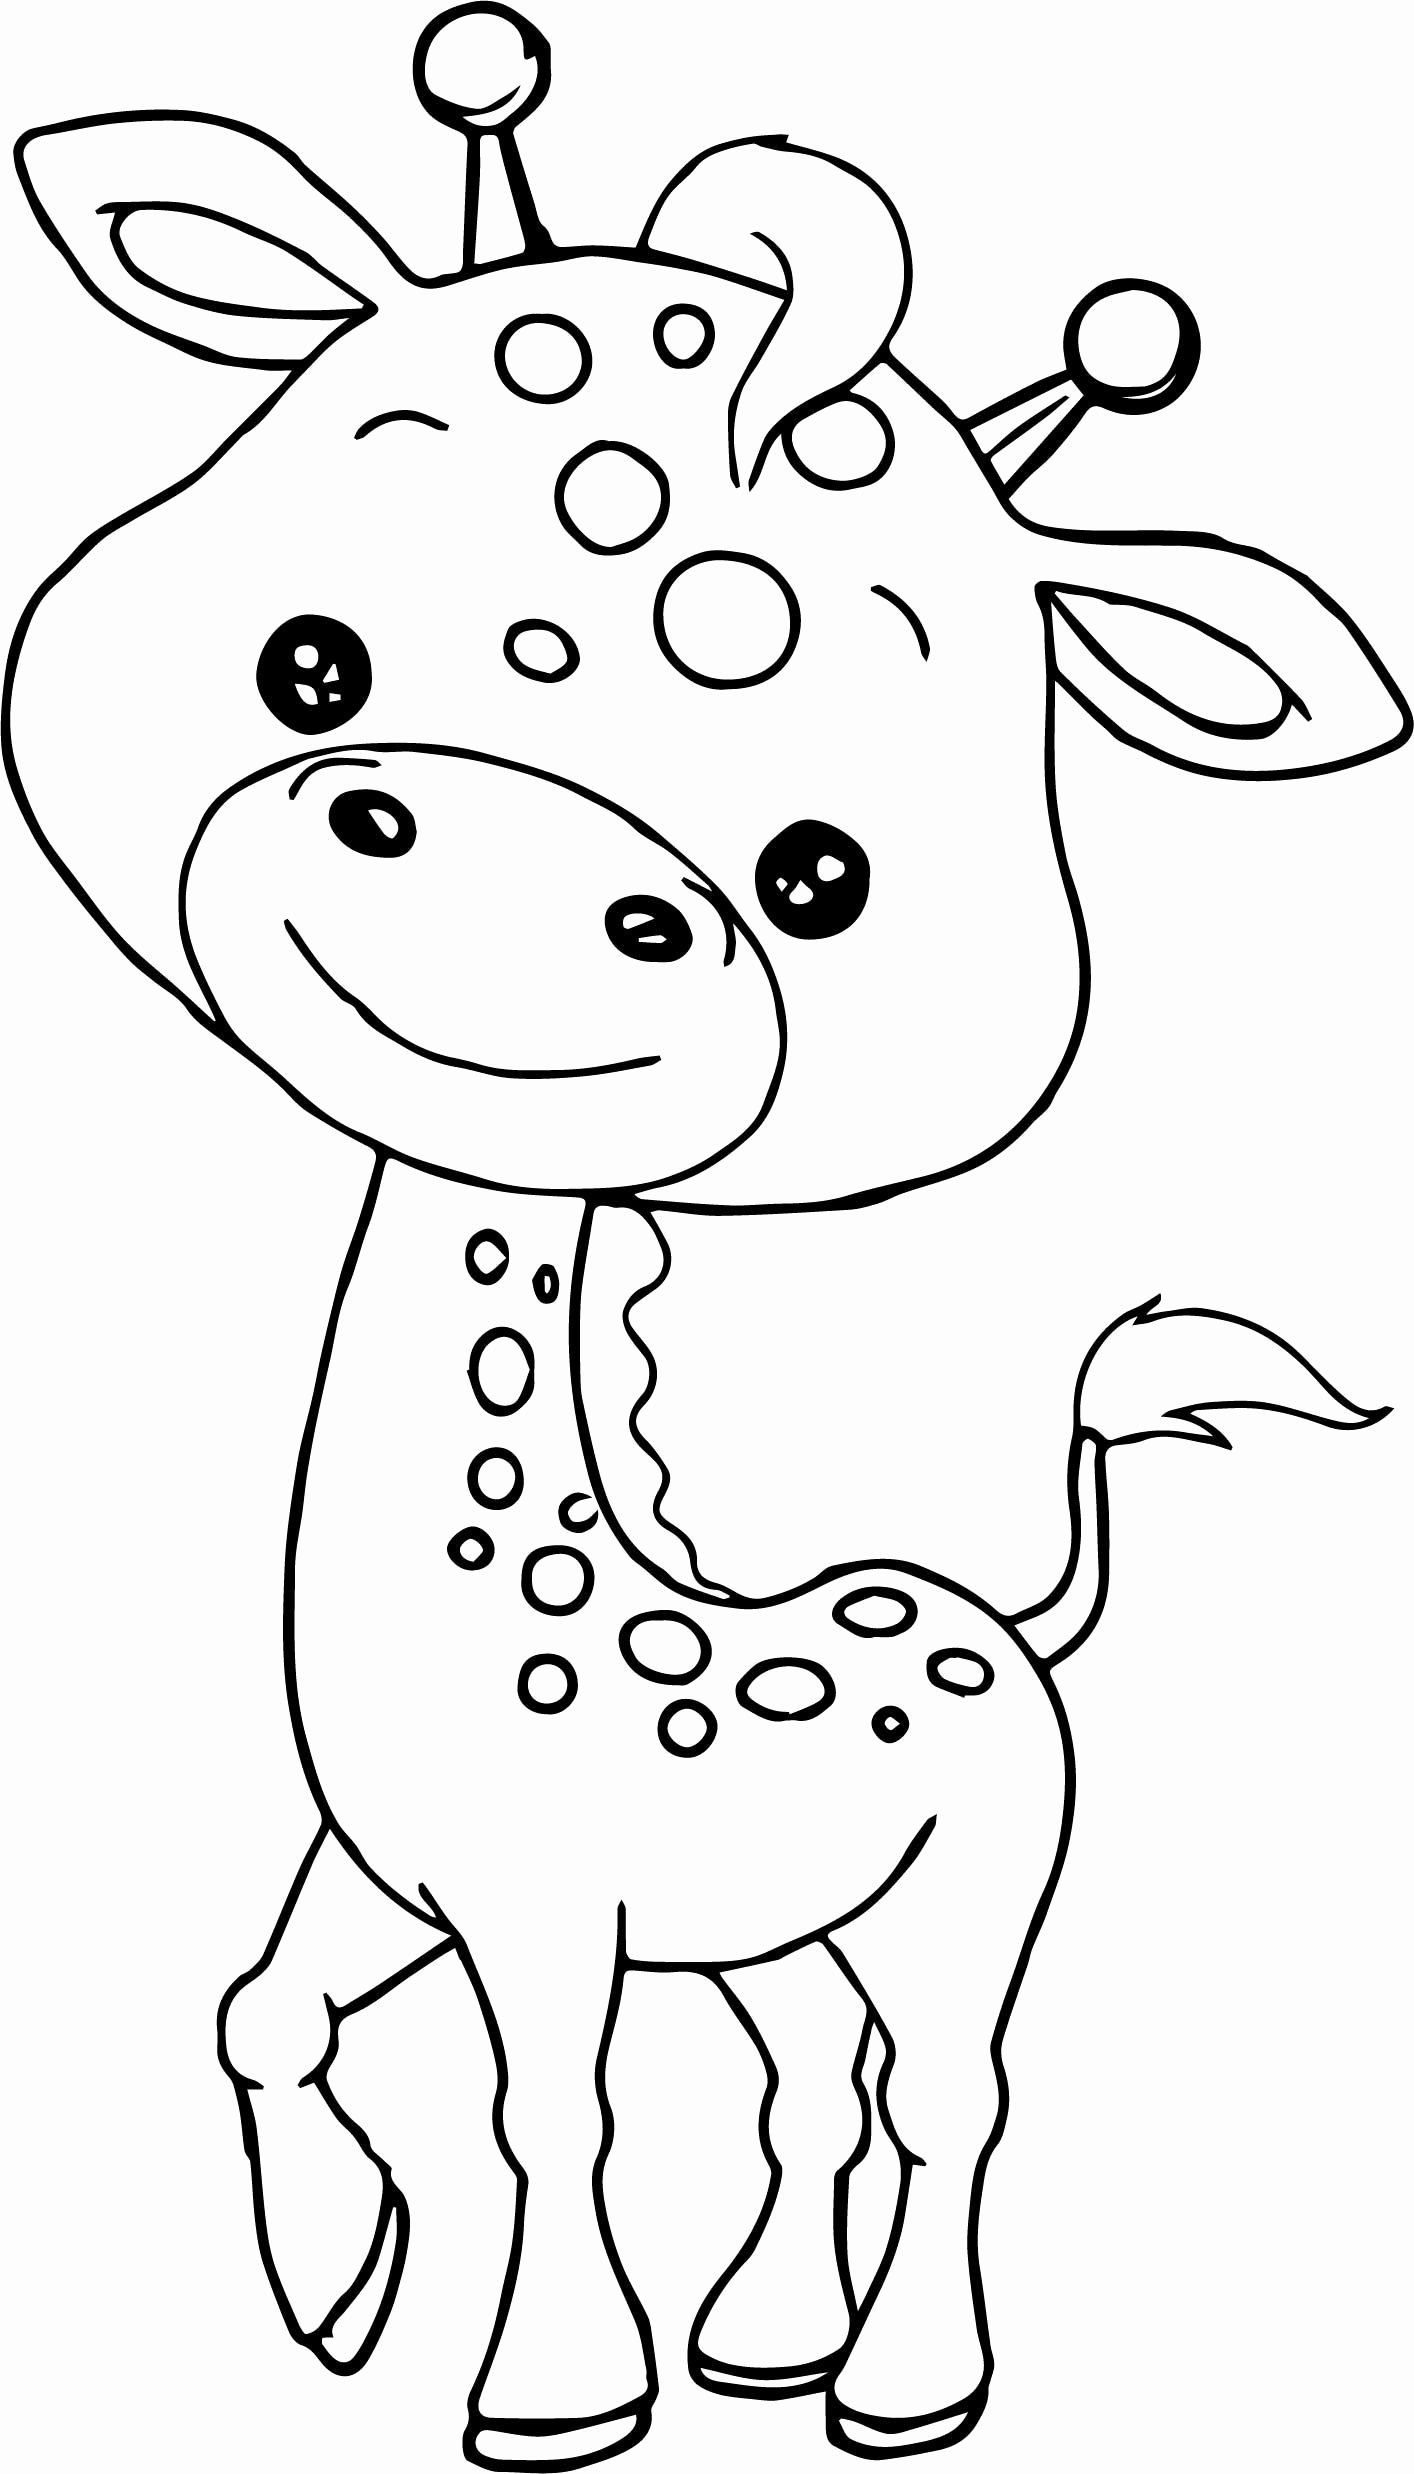 Baby Animal Coloring Pictures Beautiful Awesome Baby Jungle Free Animal Coloring Page Zoo Animal Coloring Pages Giraffe Coloring Pages Elephant Coloring Page